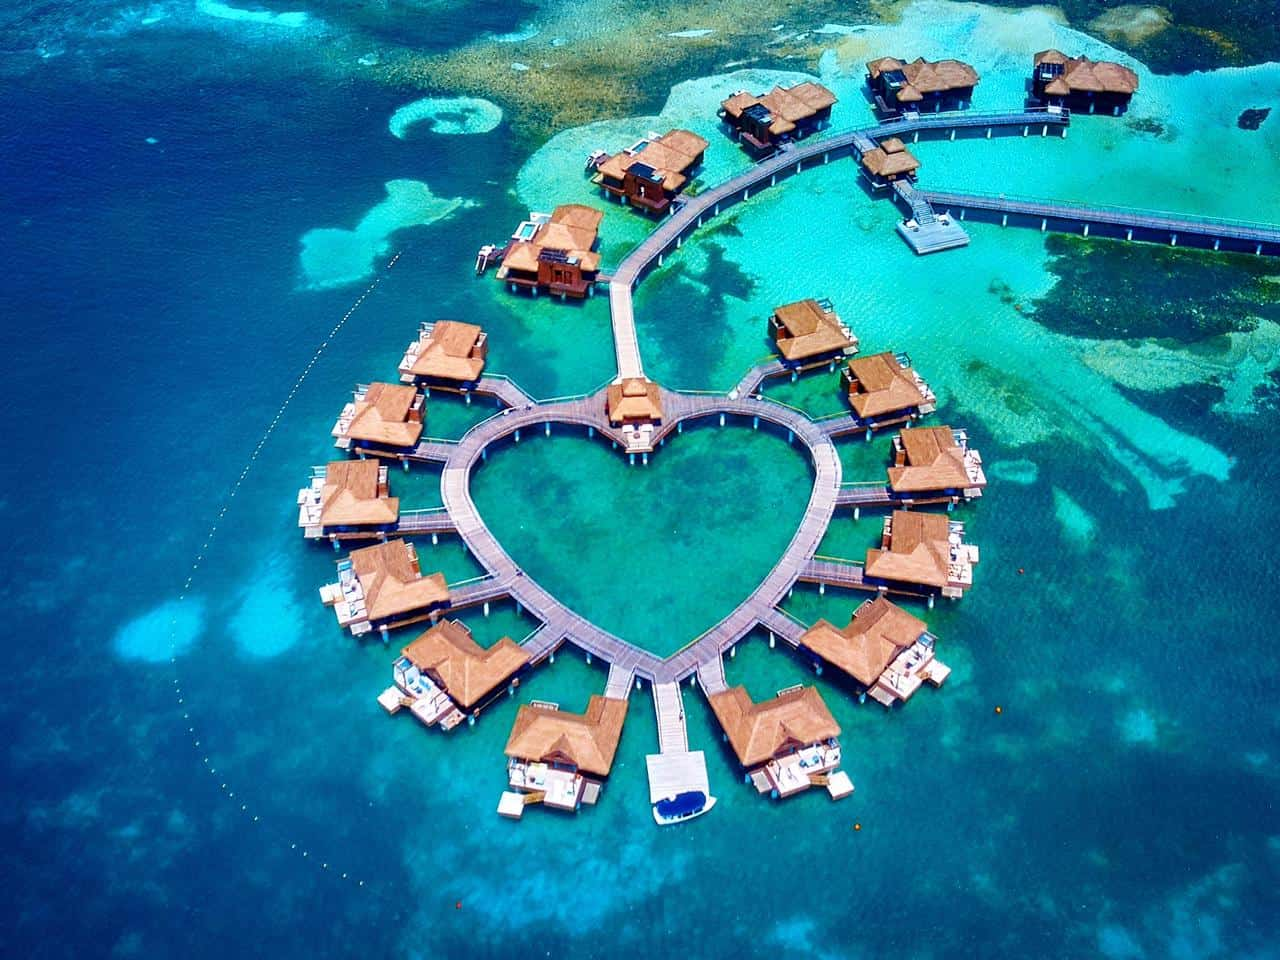 Arial photo of overwater bungalows near the usa arranged in the shape of a heart